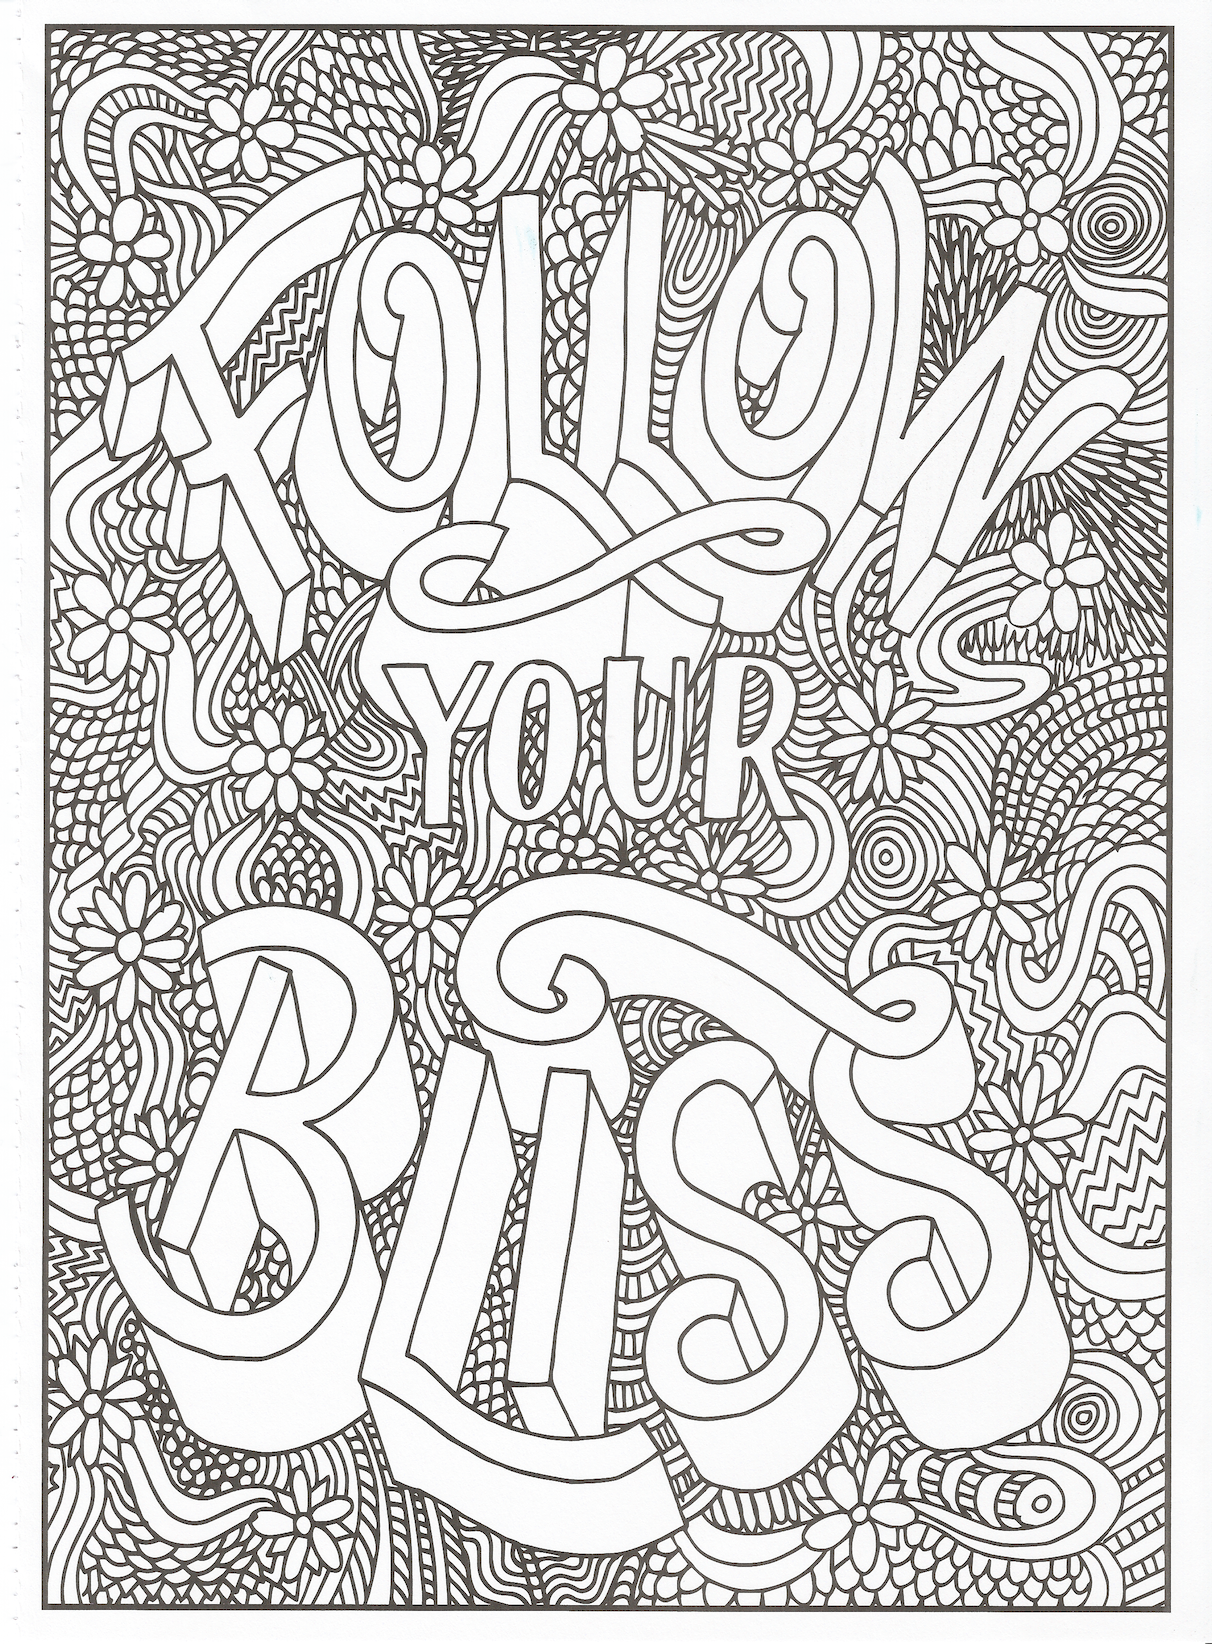 Timeless Creations Creative Quotes Coloring Page Follow Your